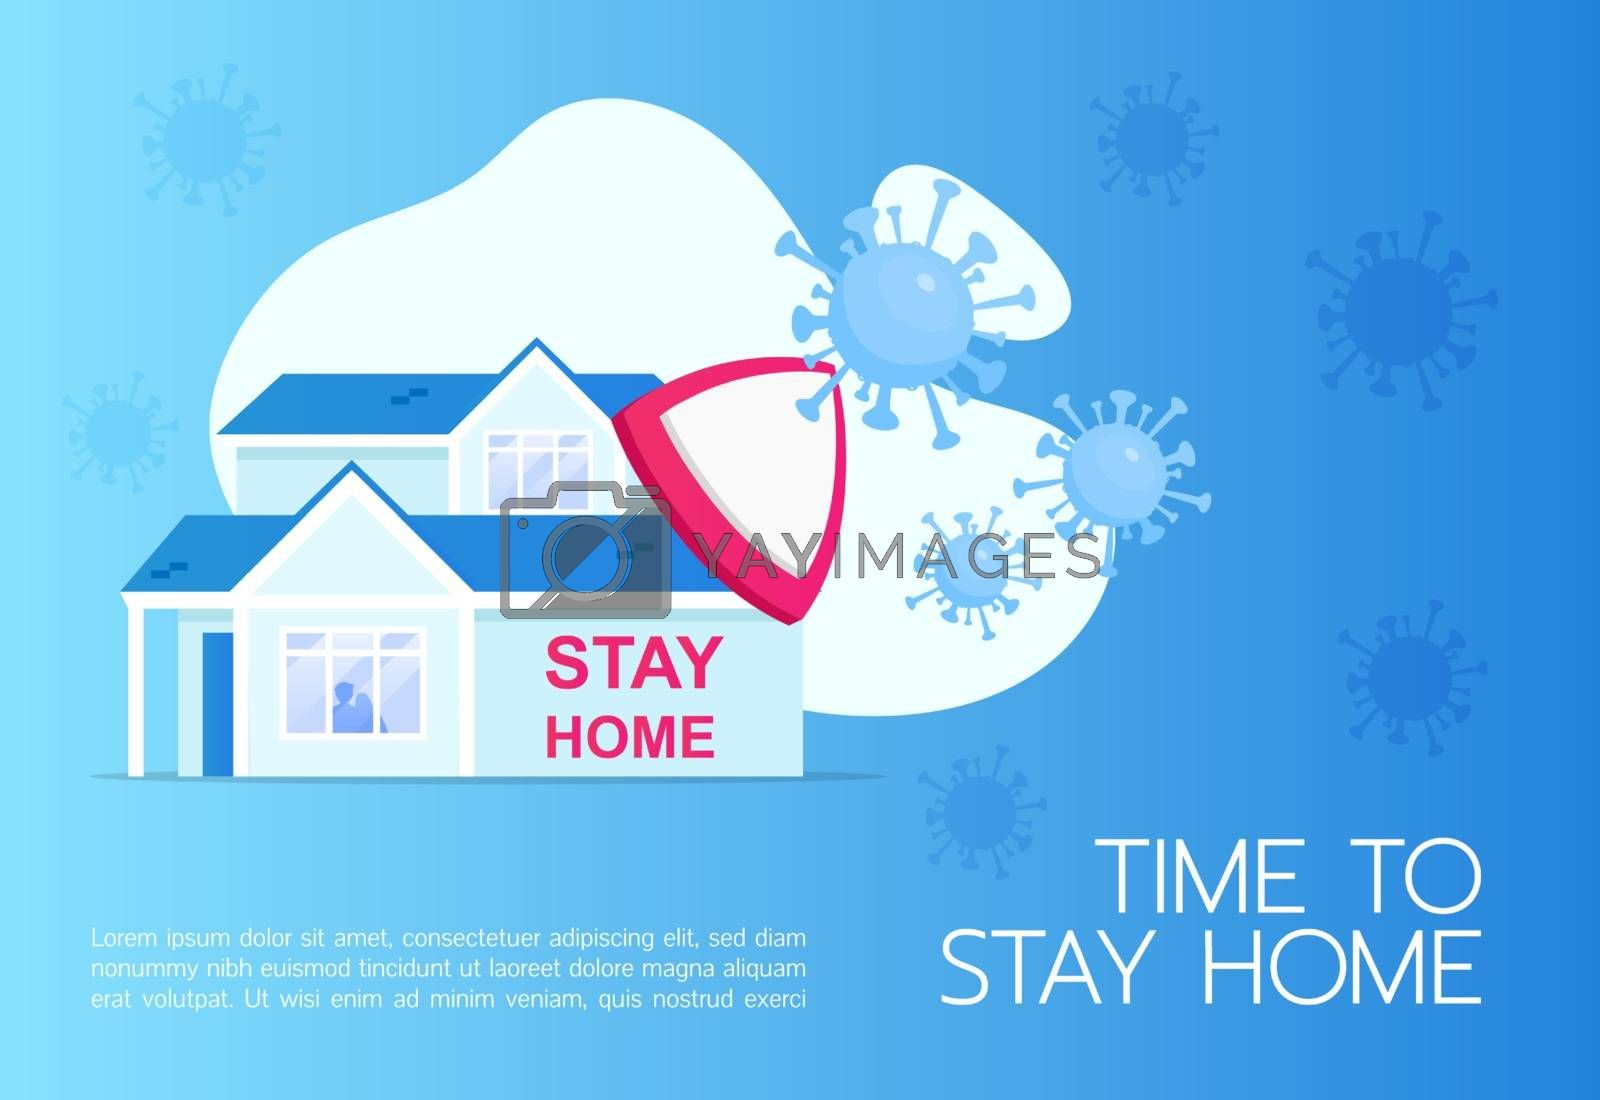 Time to stay home banner flat vector template. Brochure, poster concept design with cartoon illustration. Social distancing. Quarantine horizontal flyer, leaflet with place for text